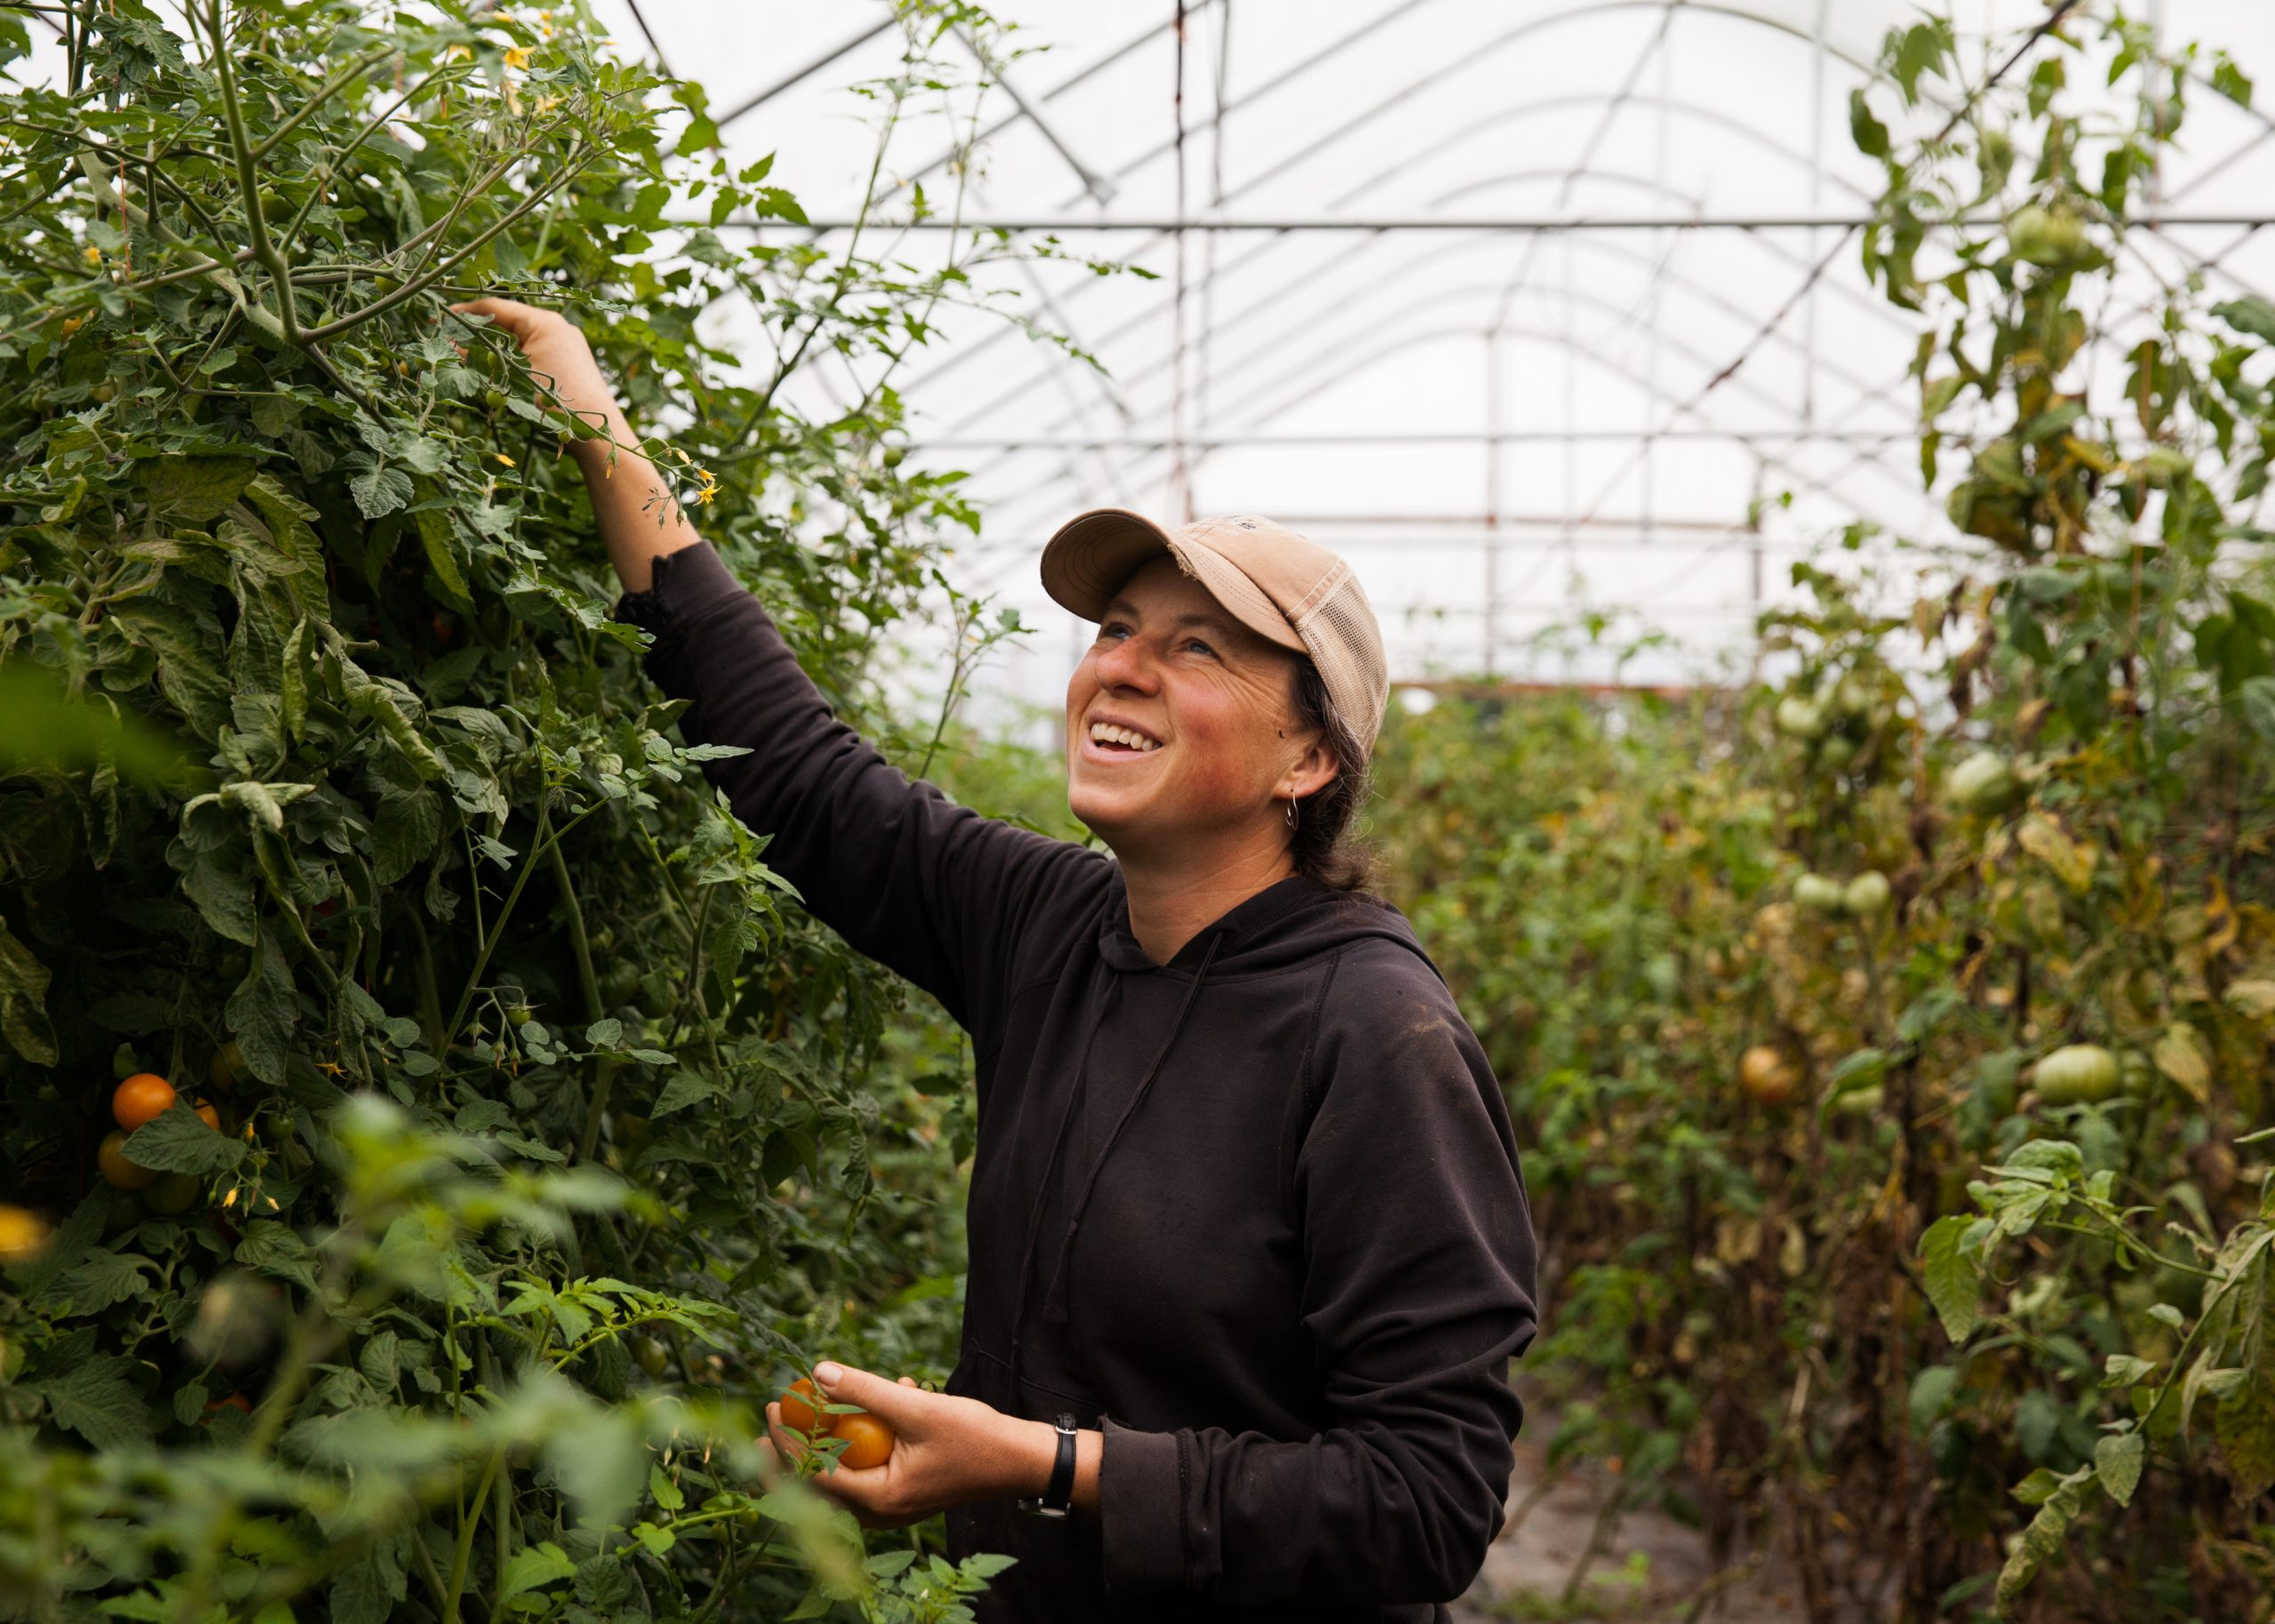 Beth Schiller, Wearing A Brown Ball Cap And Black Jacket, Picks Tomatoes In A Greenhouse. She's Looking Up And Smiling.